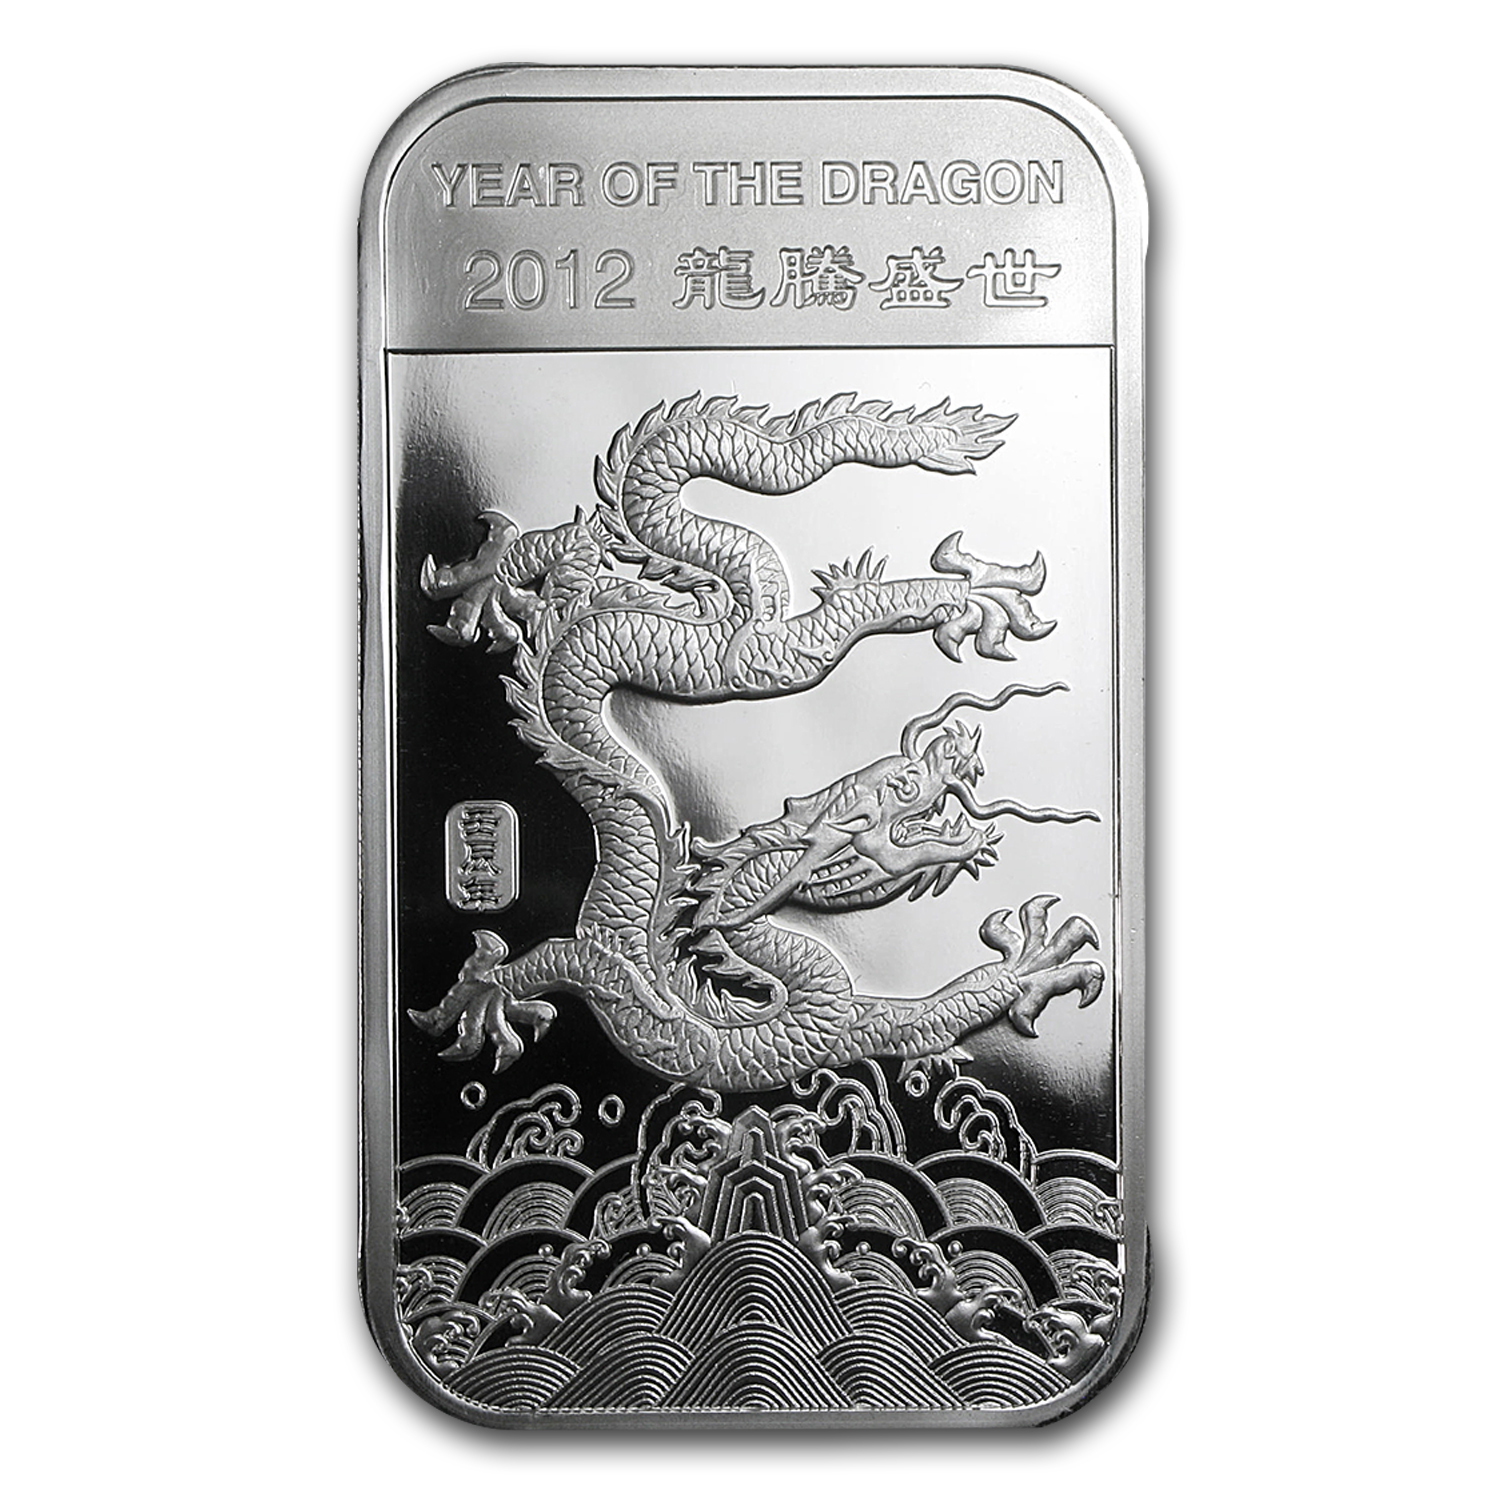 10 oz APMEX Silver Bar (Year of the Dragon)